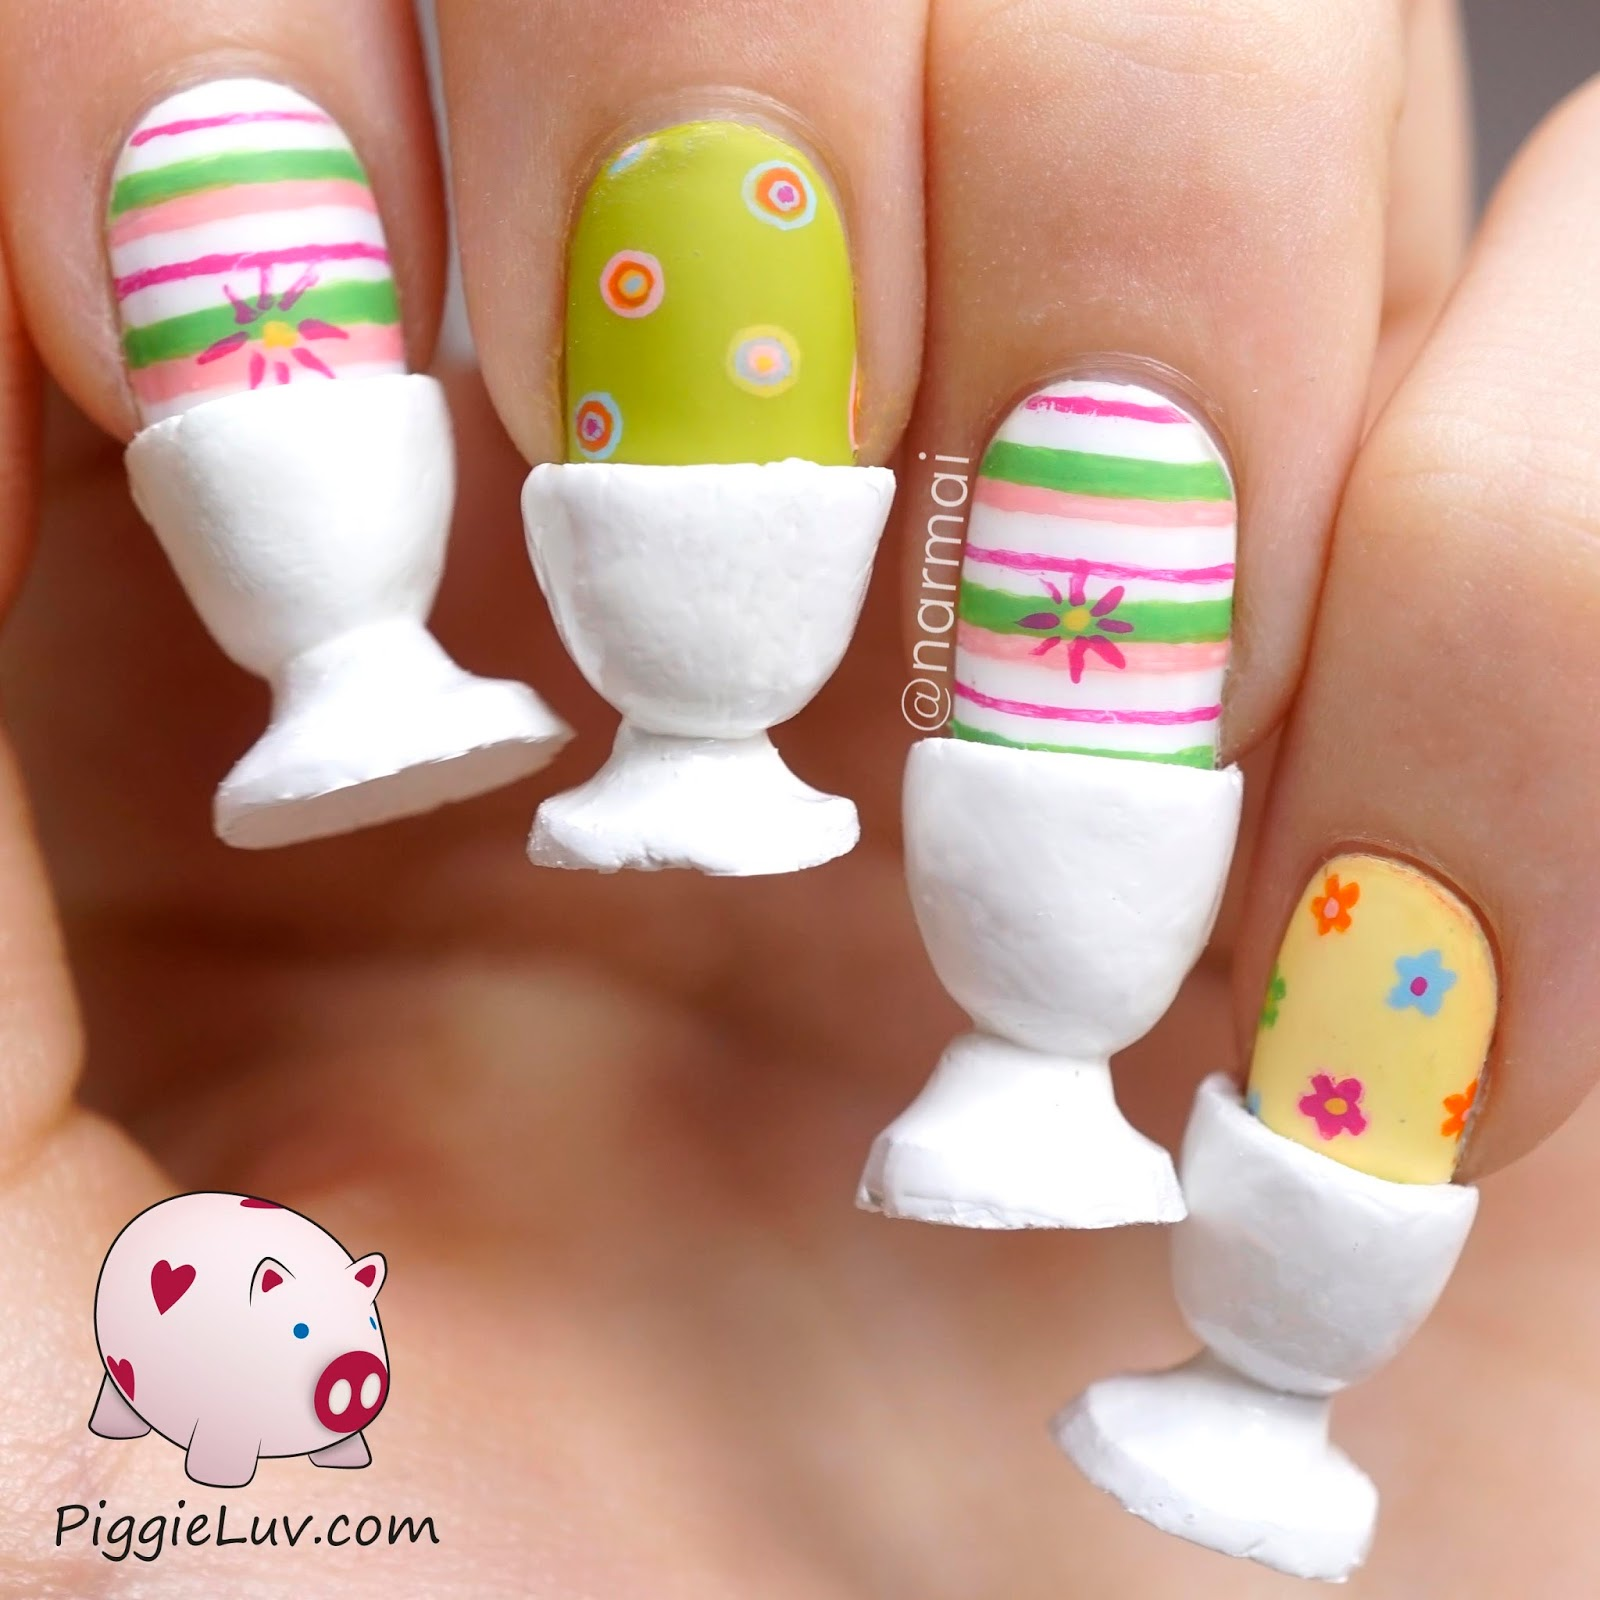 PiggieLuv: Easter eggs for breakfast, crazy 3D nail art